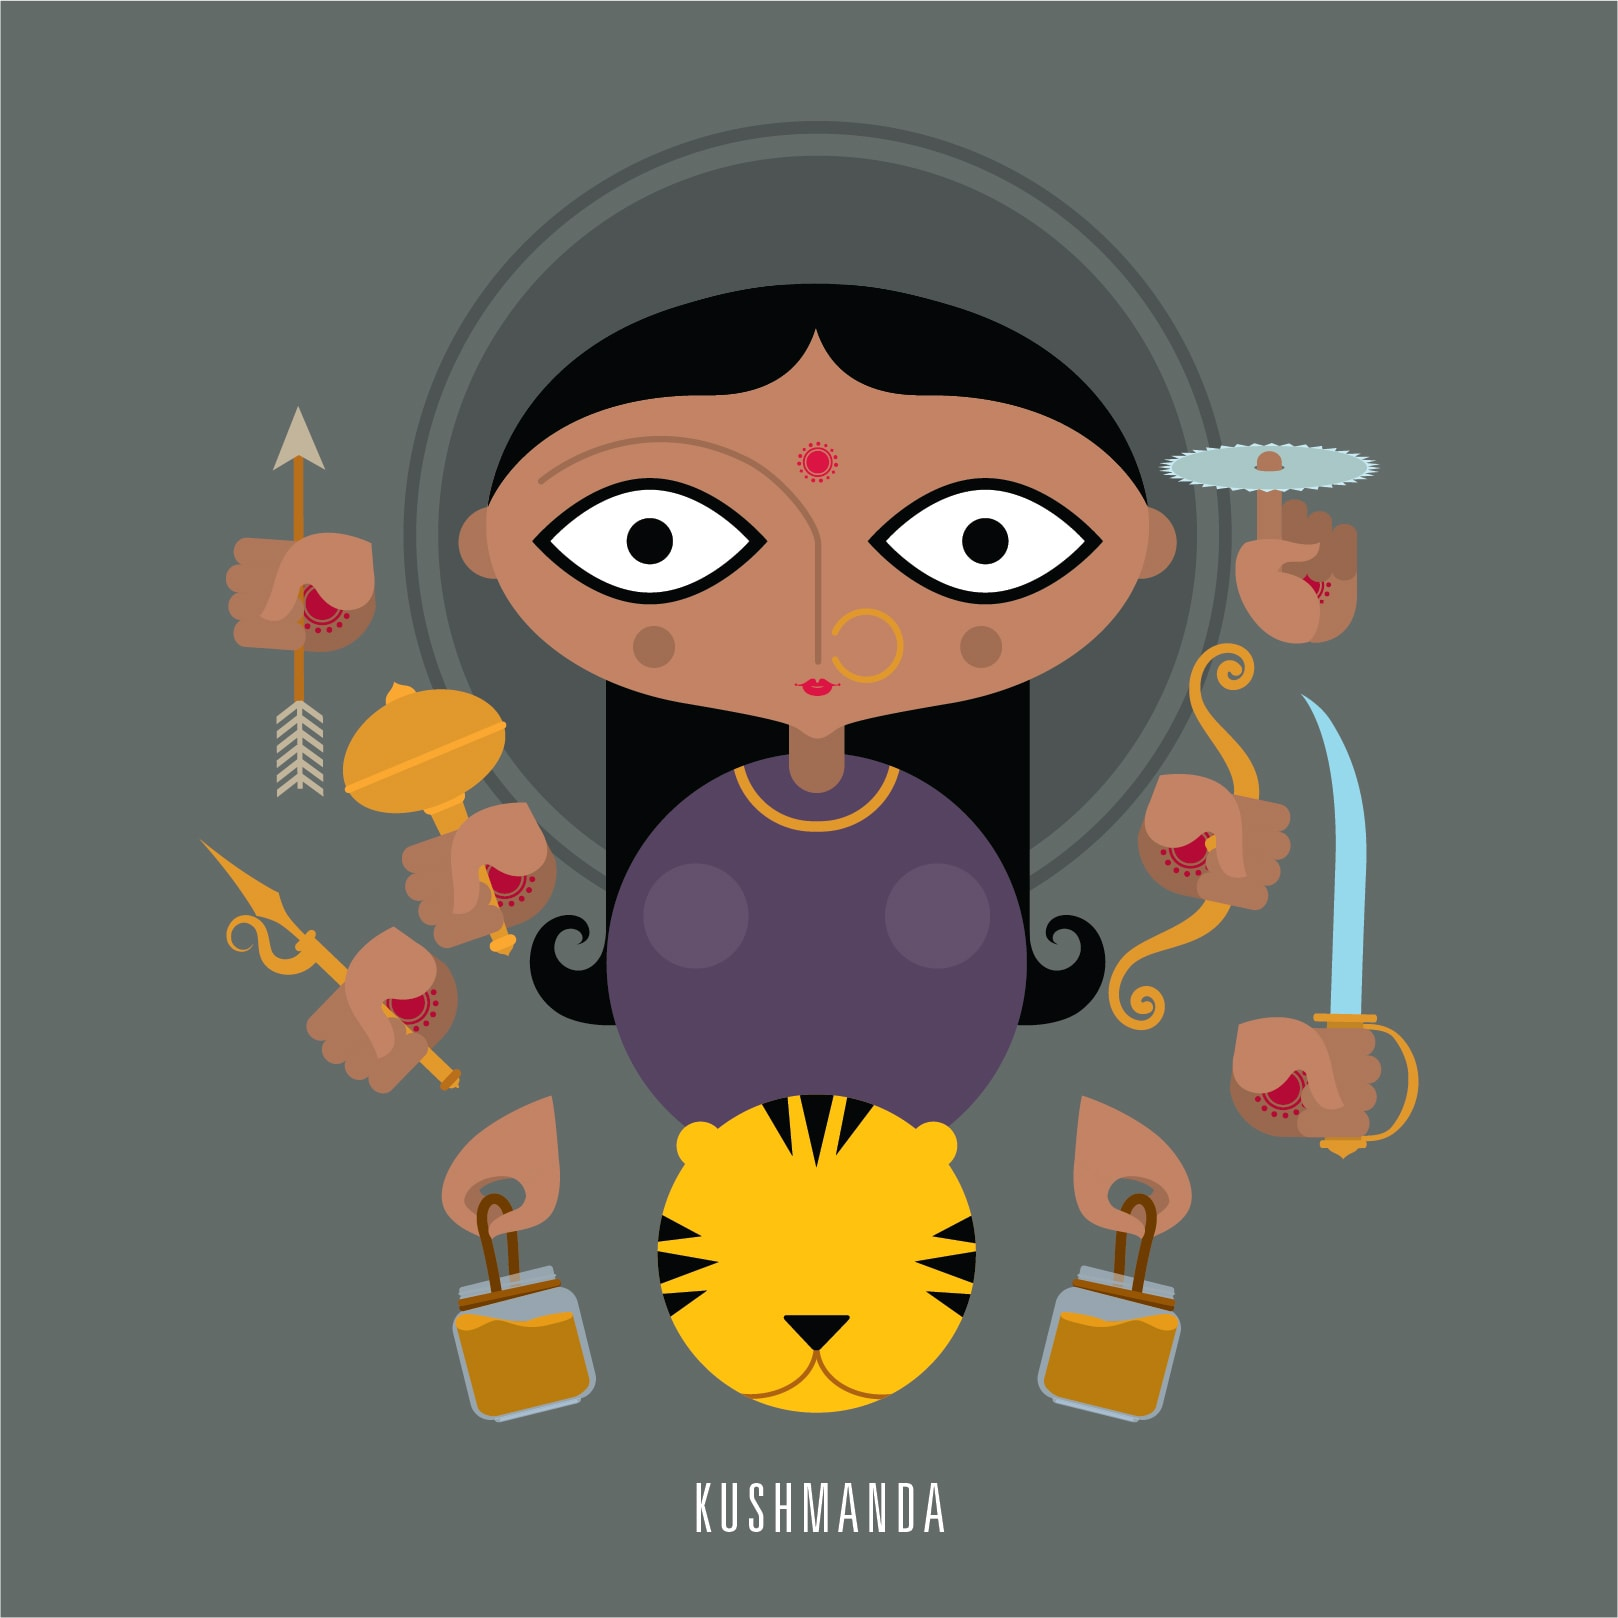 4. She is the fourth form of the Hindu goddess Durga. Ku means